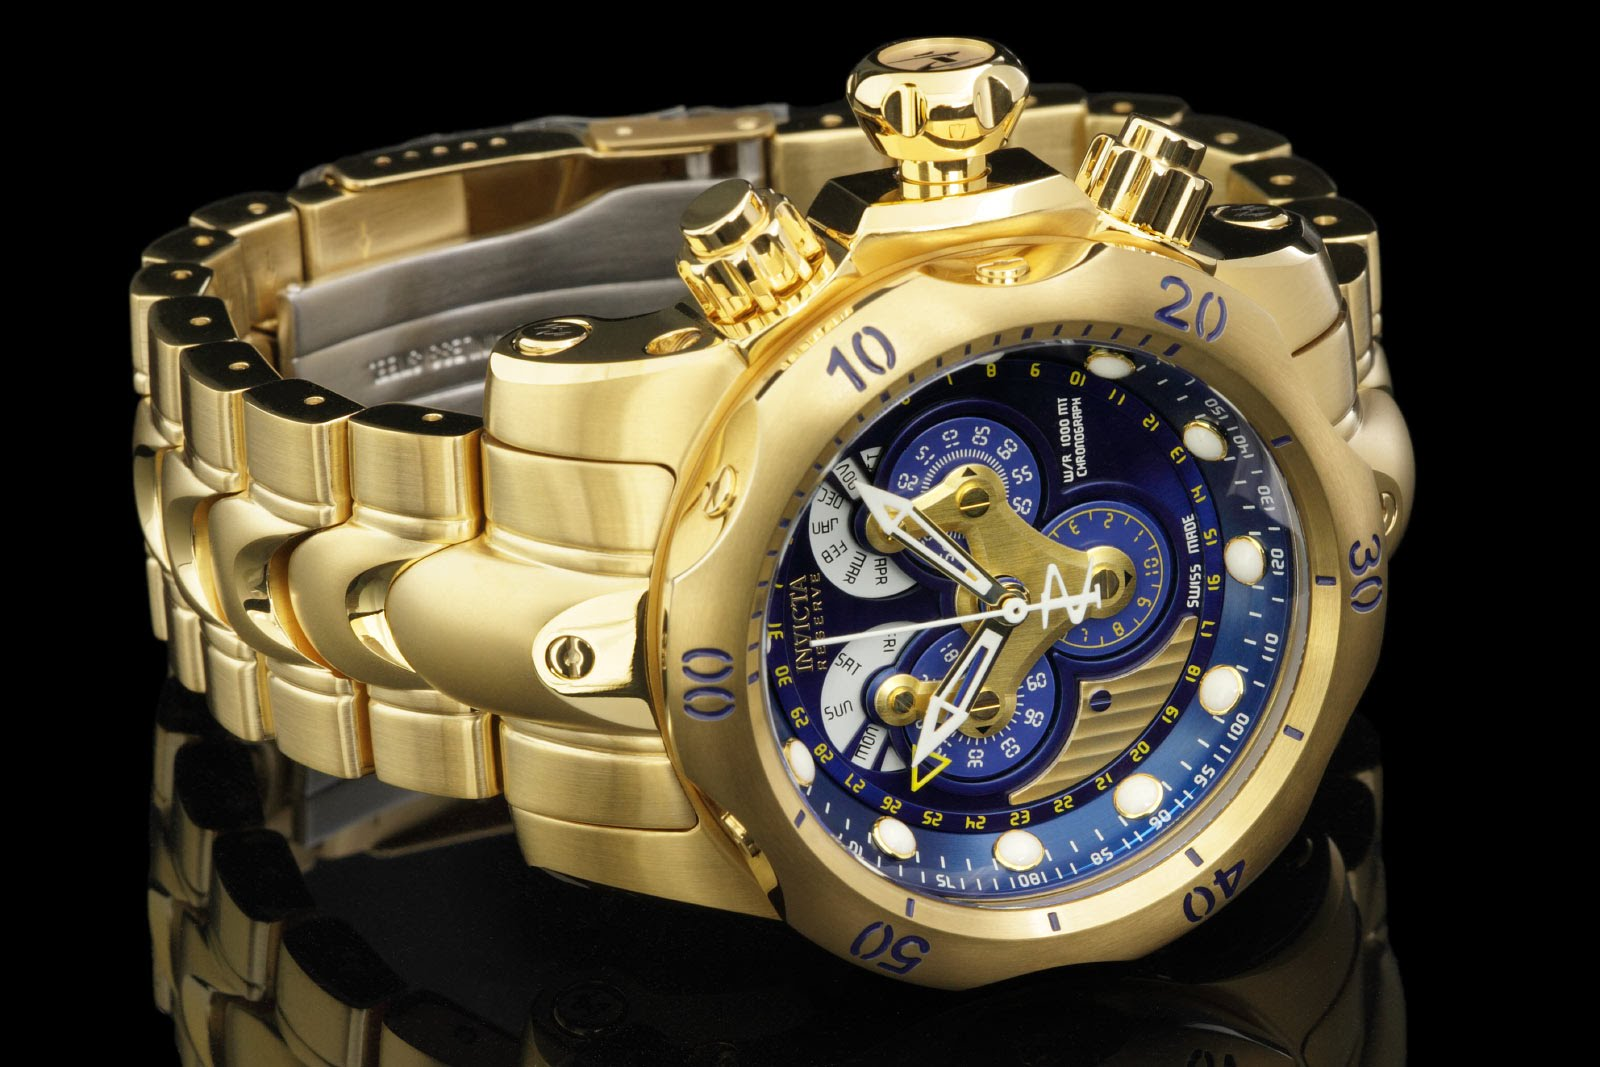 Replica Invicta Reserve watches